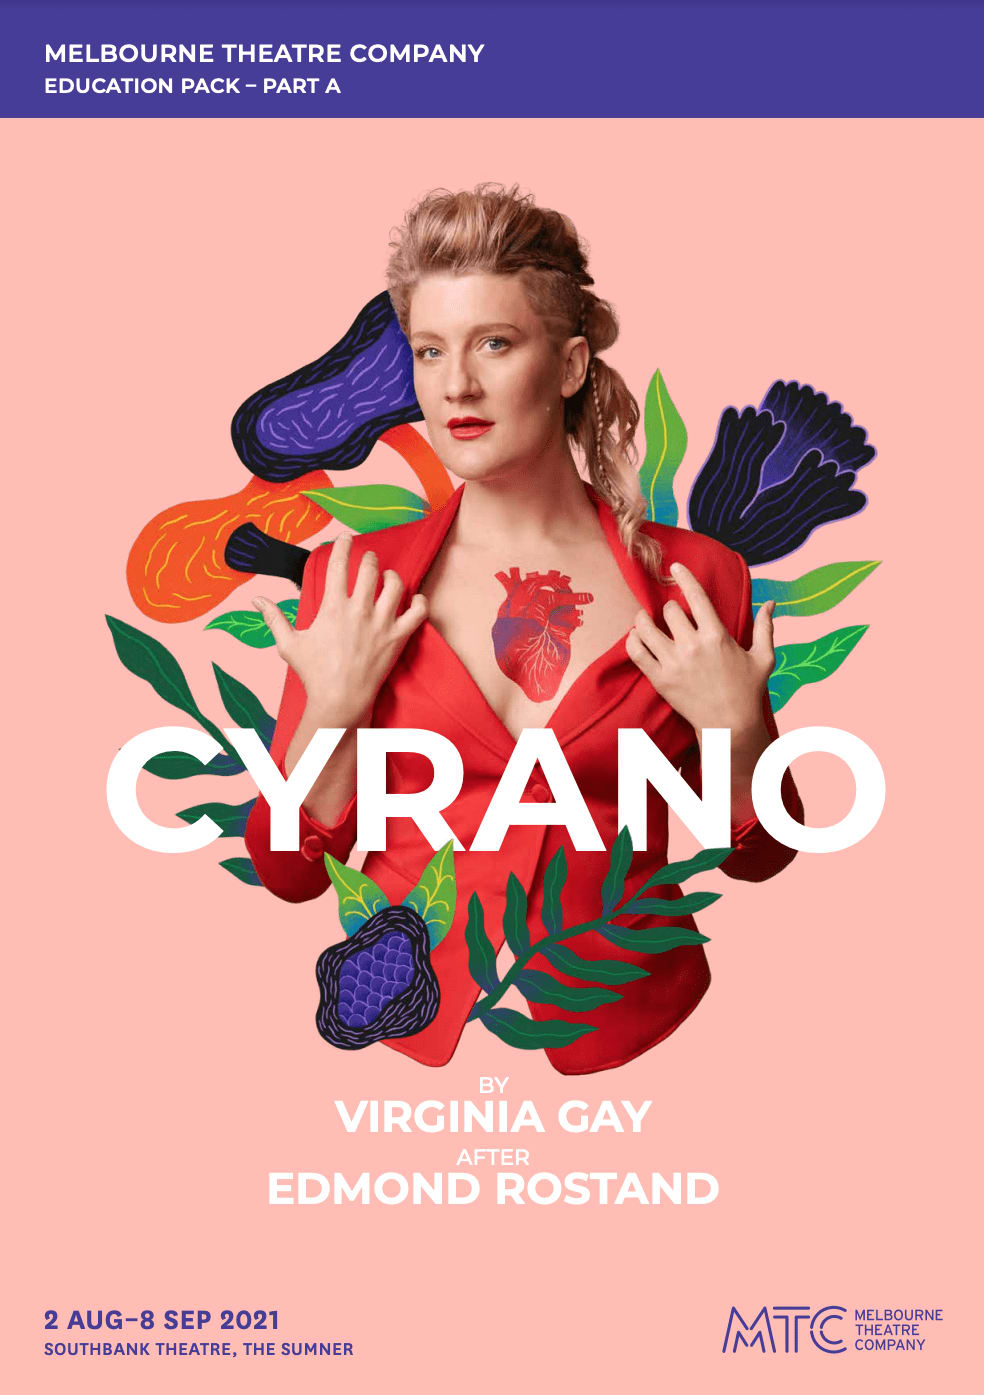 Cyrano_EdPack_Part_A_Cover.png